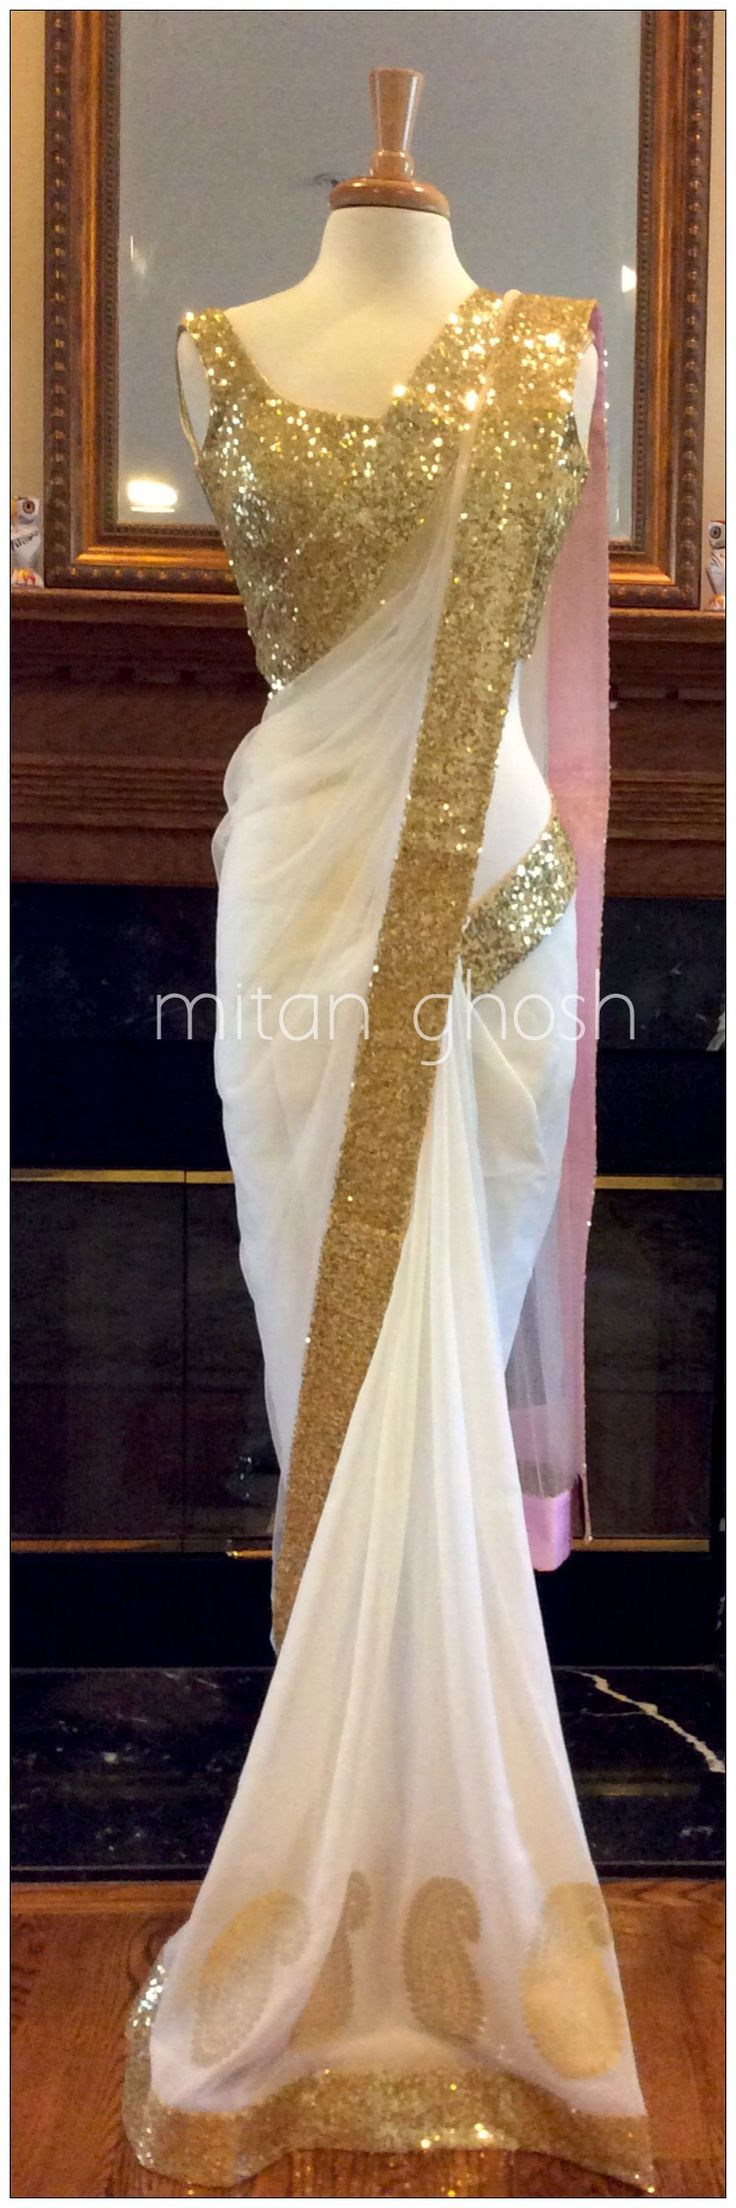 Mitan ghosh kerala style saree